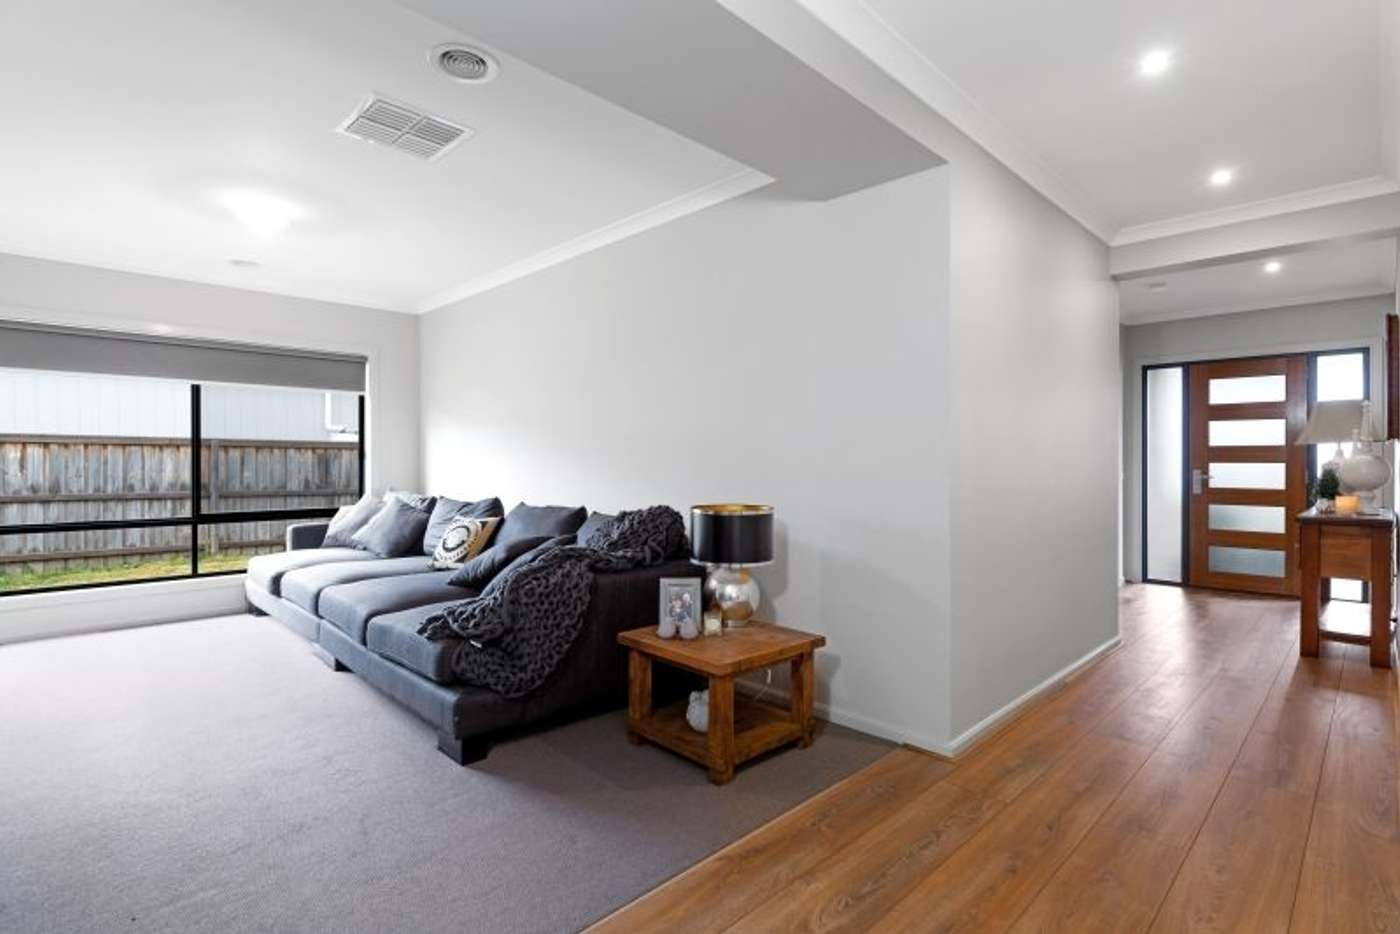 Fifth view of Homely house listing, 6 Parkside Avenue, Romsey VIC 3434